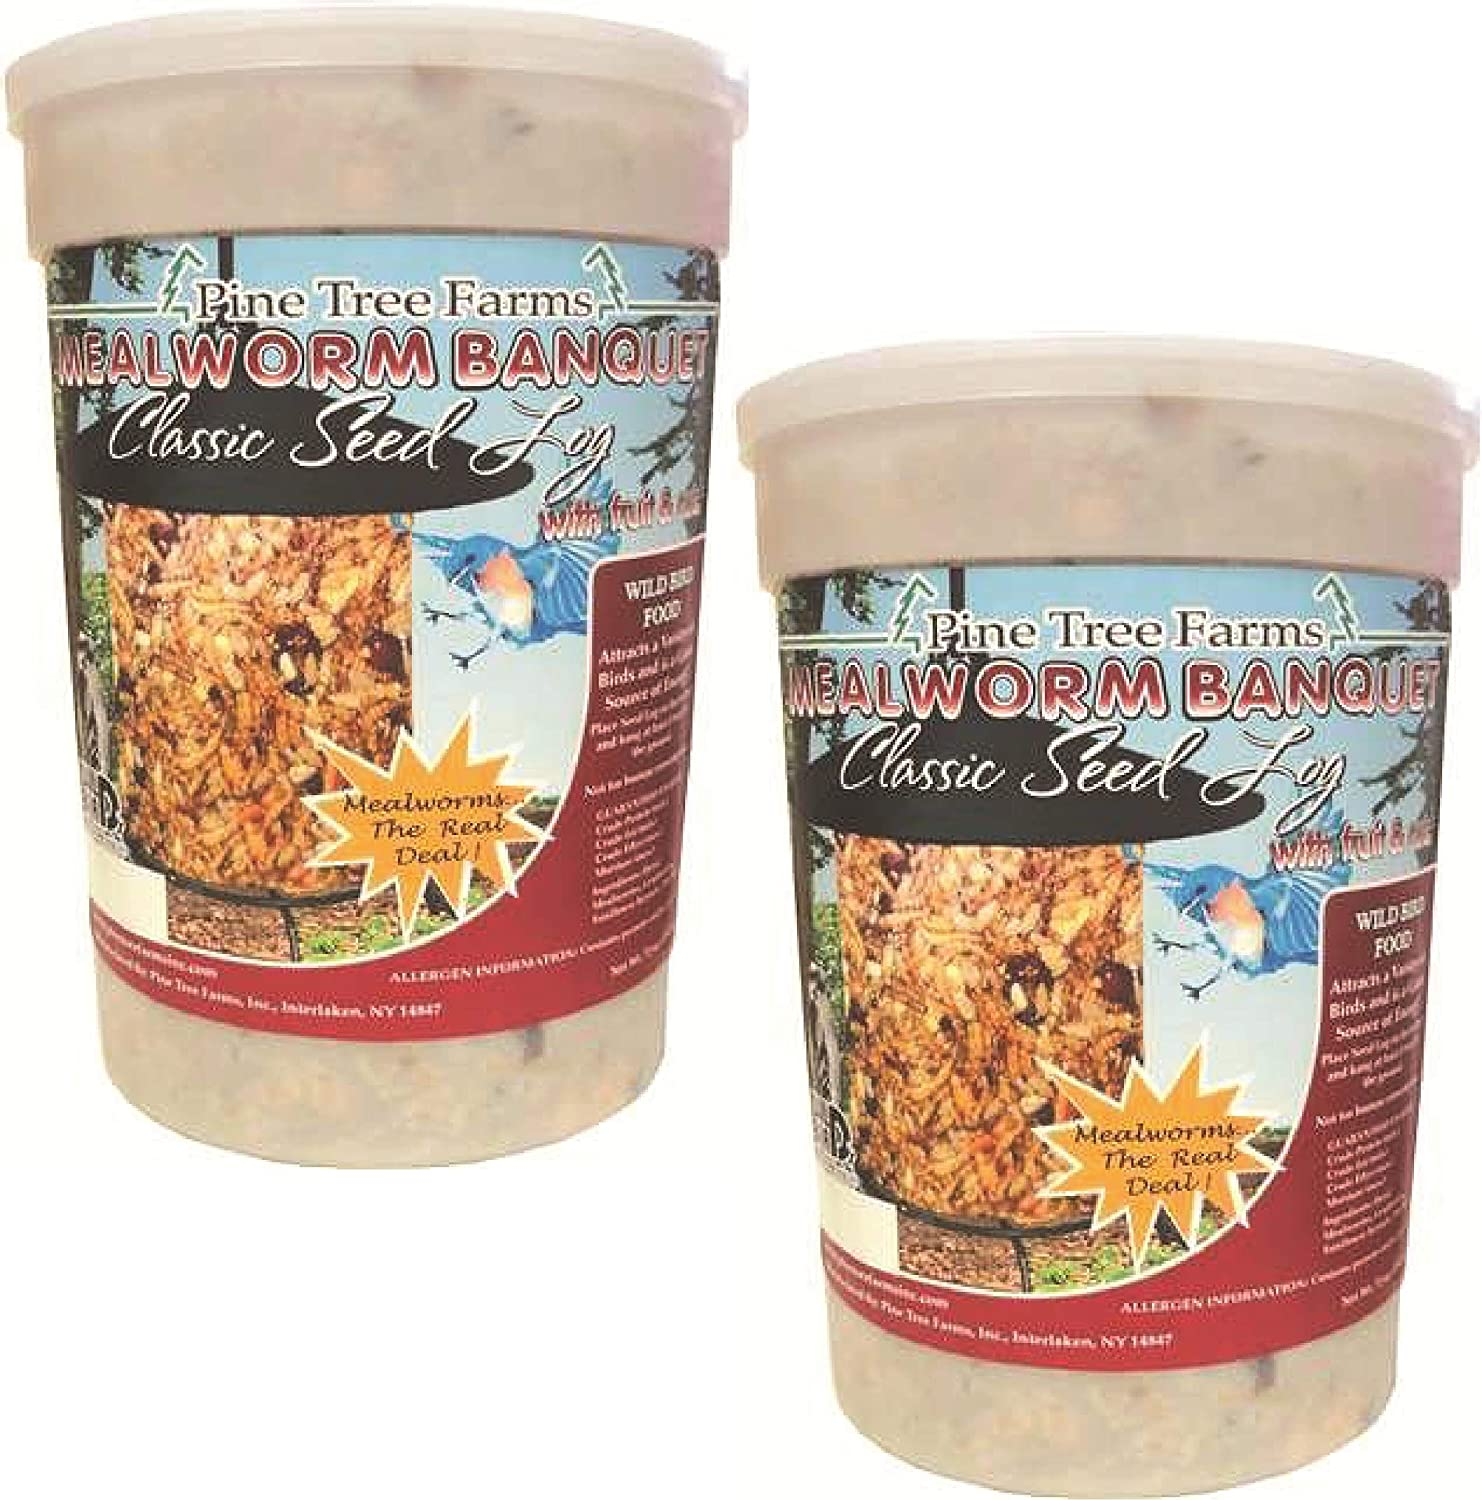 Pine Tree Farms 2-Pack Mealworm Banquet oz 72 Seed Log Classic All Max 56% OFF items in the store